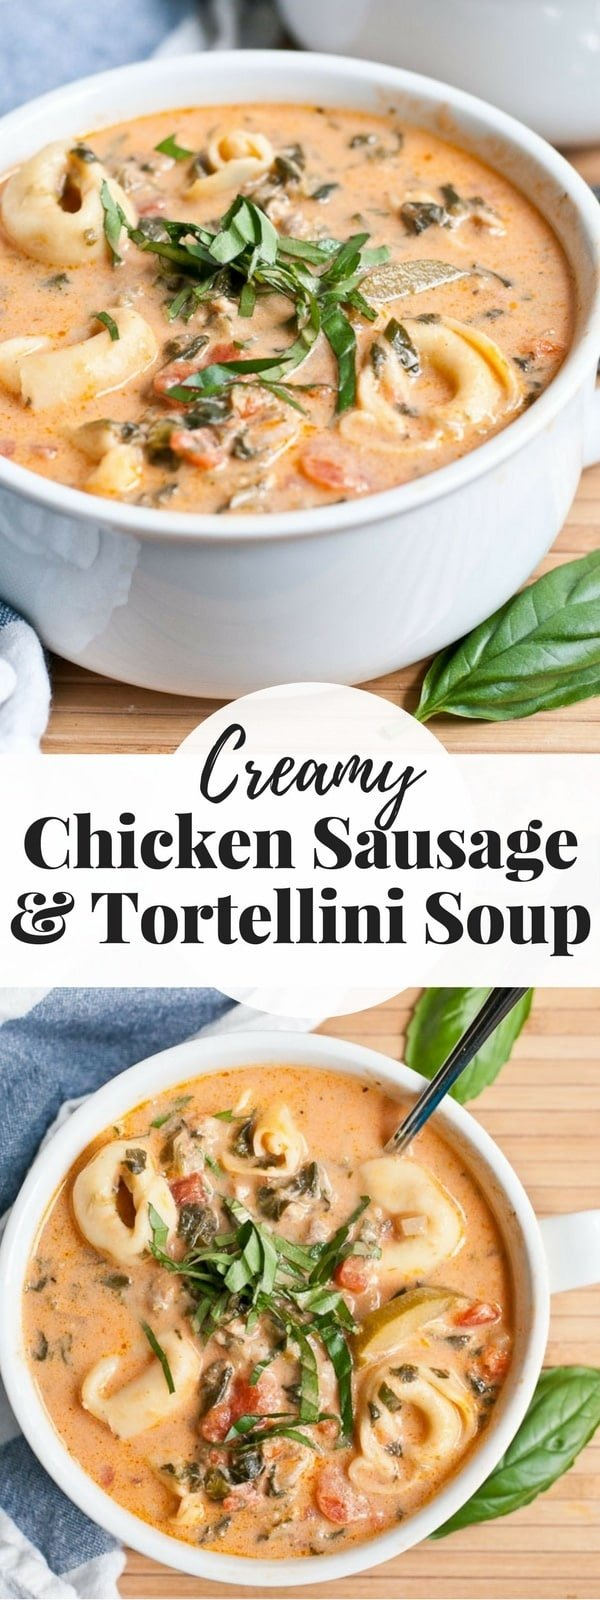 Chicken sausage and tortellini in a creamy tomato broth